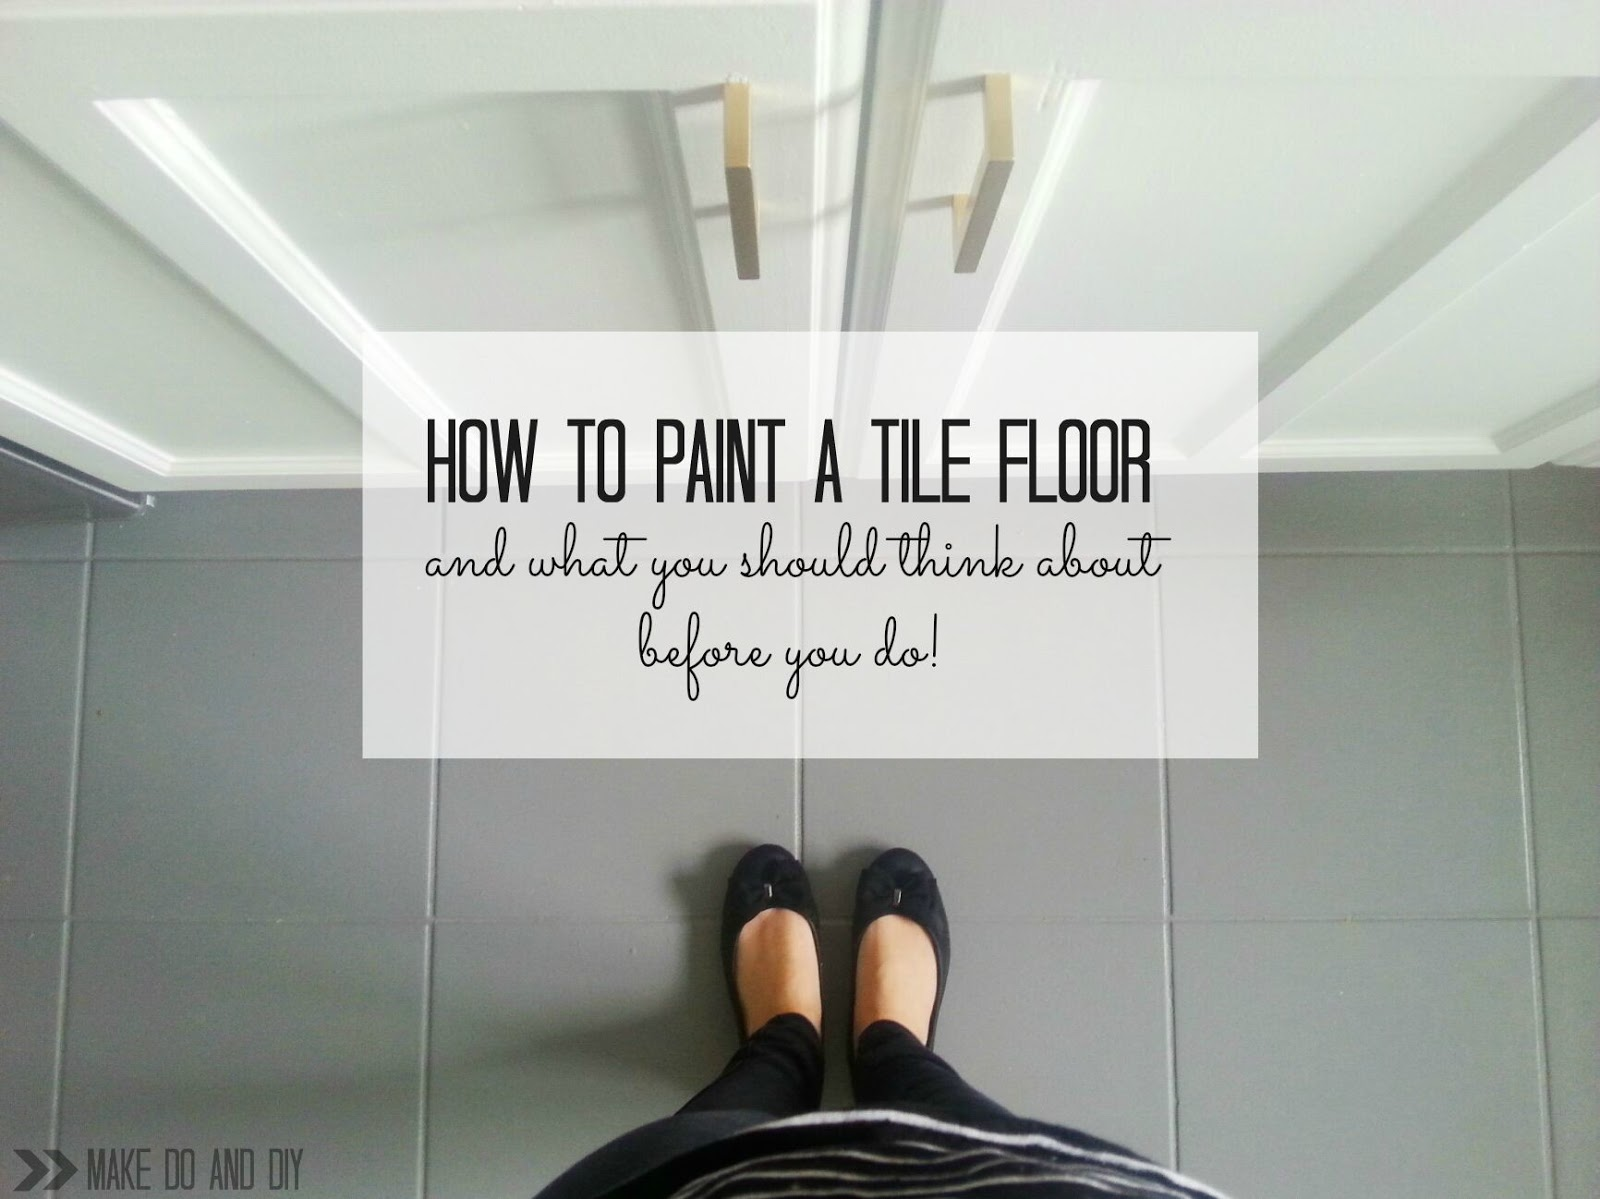 Painted tile floor no really make do and diy how to paint a tile floor and what you should think about before you do doublecrazyfo Image collections